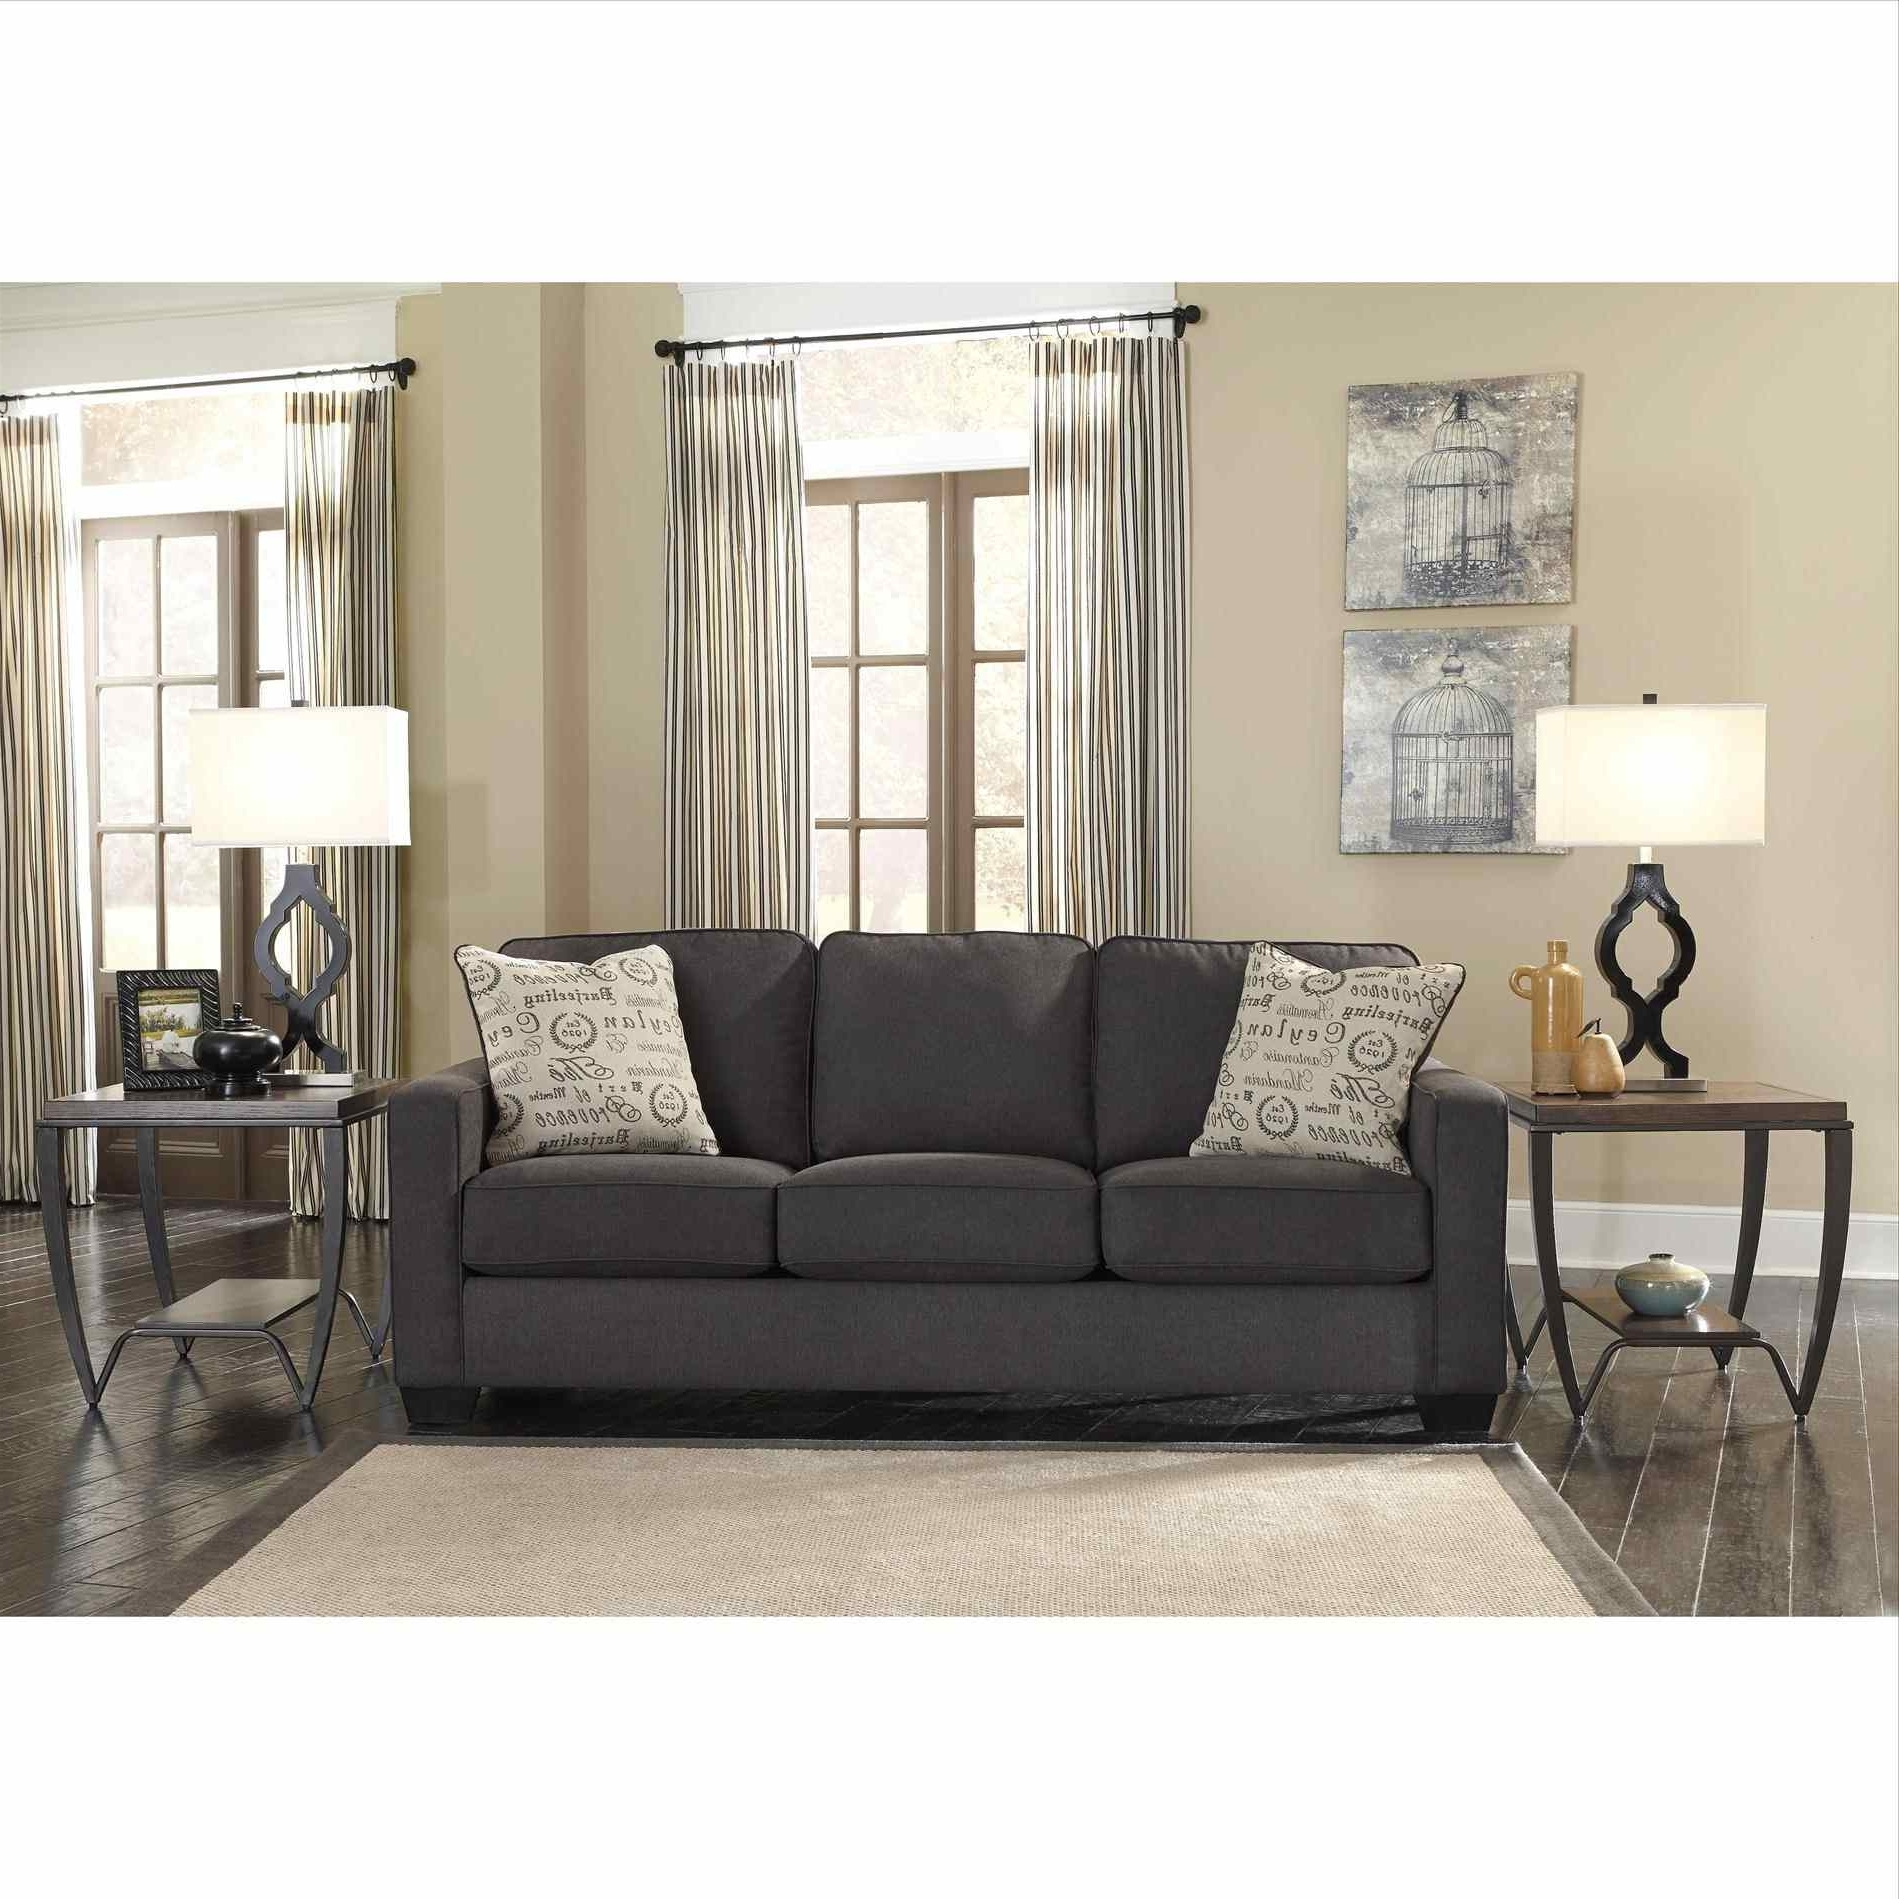 2019 Sam Levitz Sectional Sofas Intended For Couch : W Accent Pillows Sam Levitz Furniture Brindon Sofas Living (View 16 of 20)